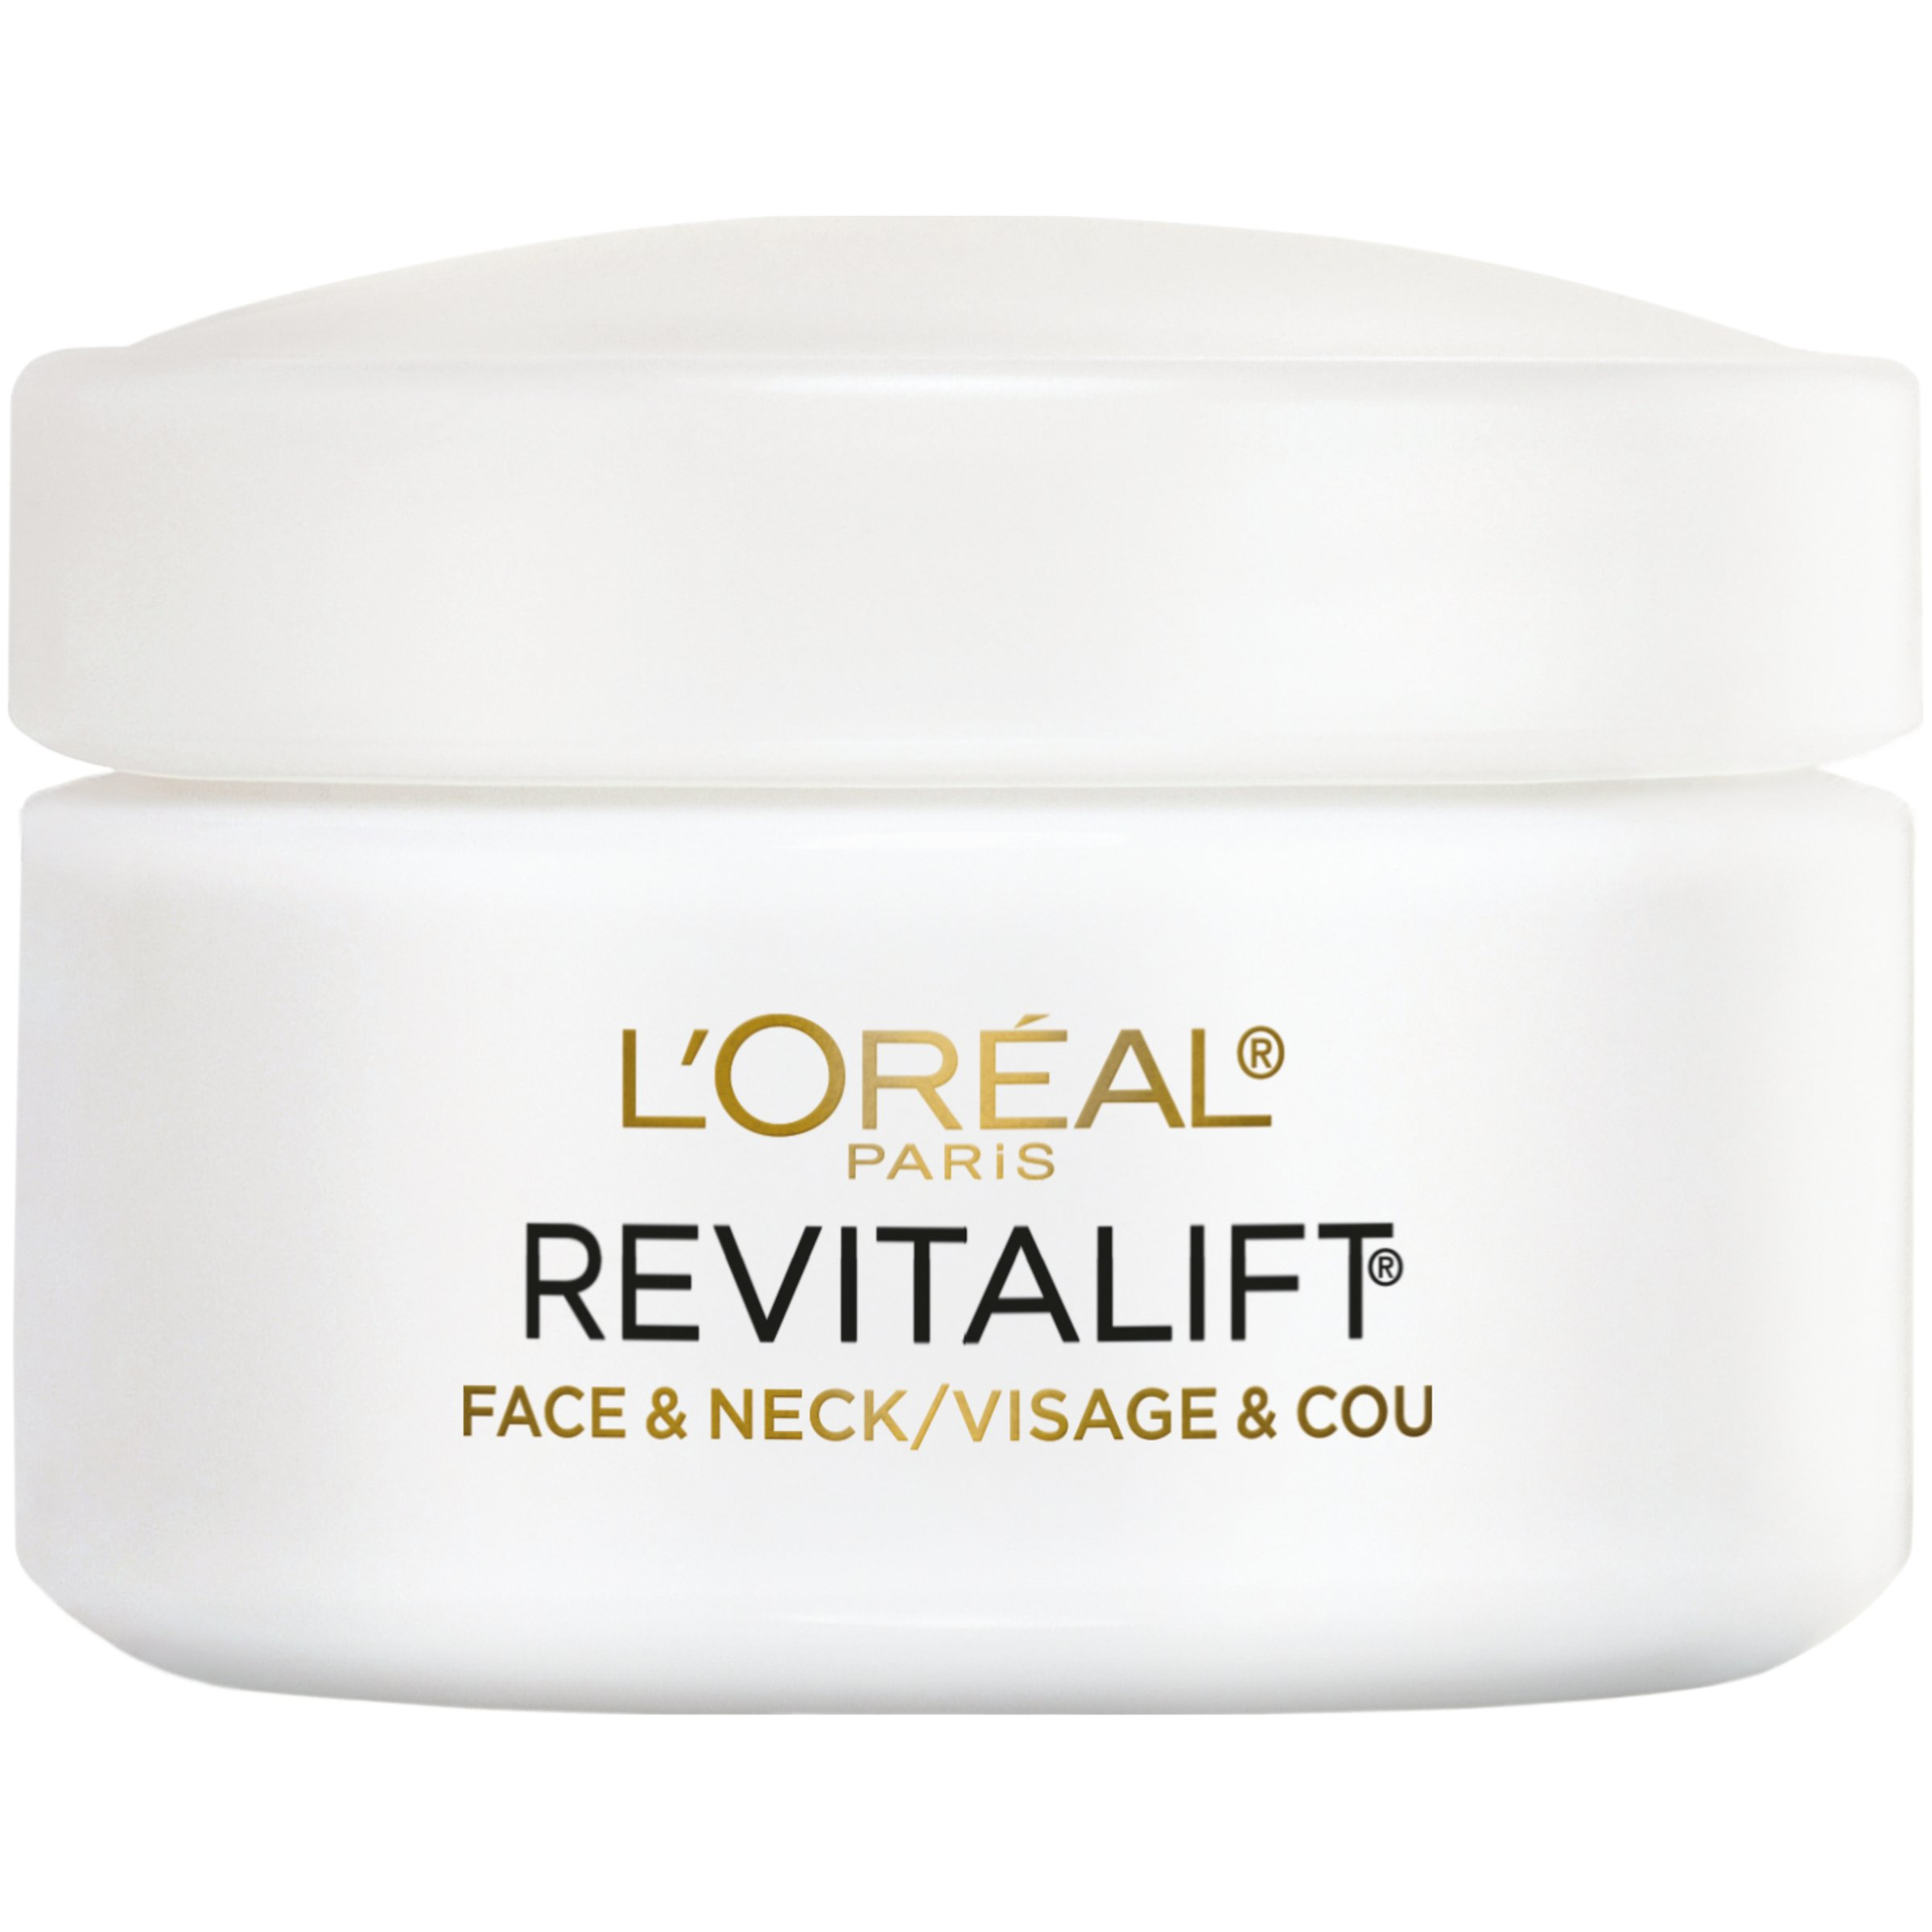 L'Oreal Paris Skincare Revitalift Anti-Wrinkle and Firming Face and Neck Moisturizer with Pro-Retinol Paraben Free 1.7 oz. by L'Oreal Paris